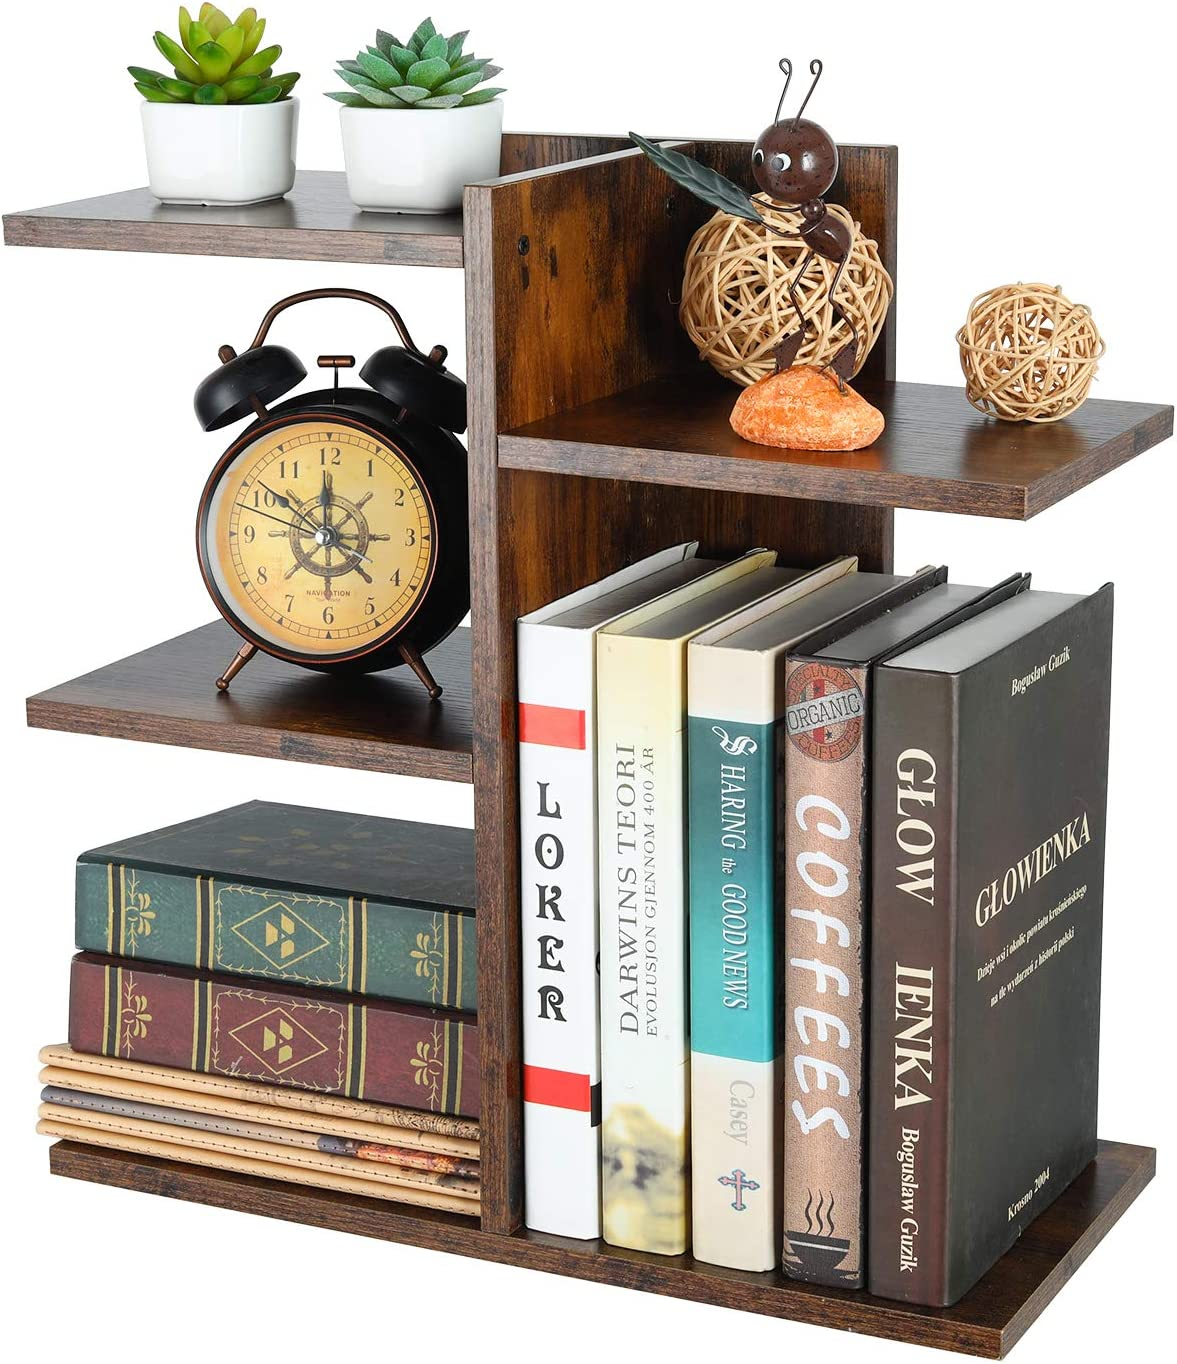 PAG Wood Desktop Shelf Small Bookshelf Assembled Countertop Bookcase Literature Holder Accessories Display Rack Office Supplies Desk Organizer, Retro Brown